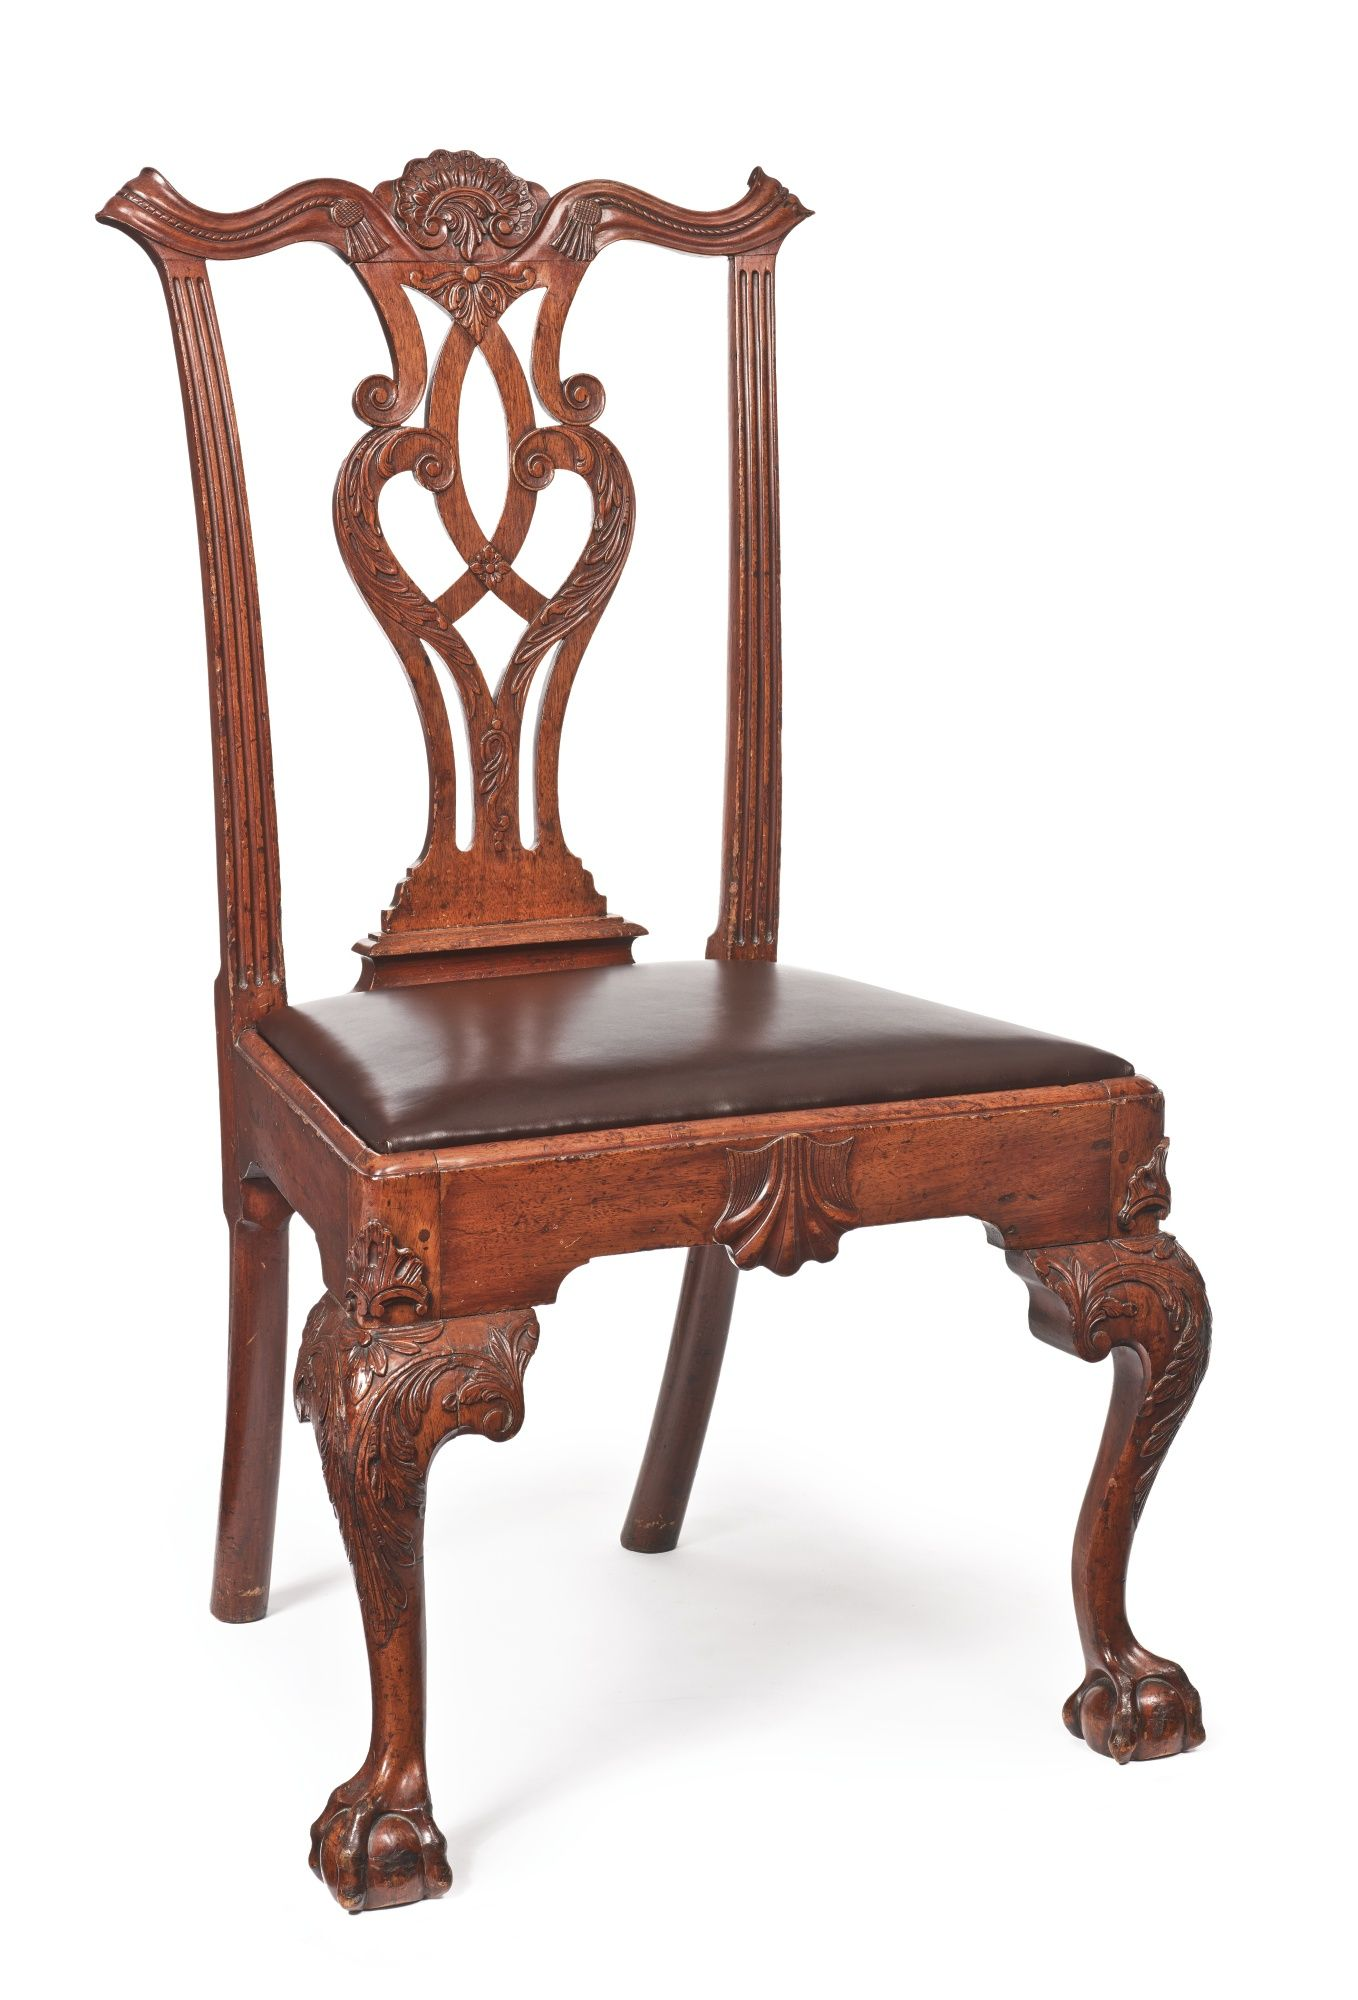 The Stokes Family Very Fine And Rare Chippendale Carved Mahogany Side Chair Philadelphia